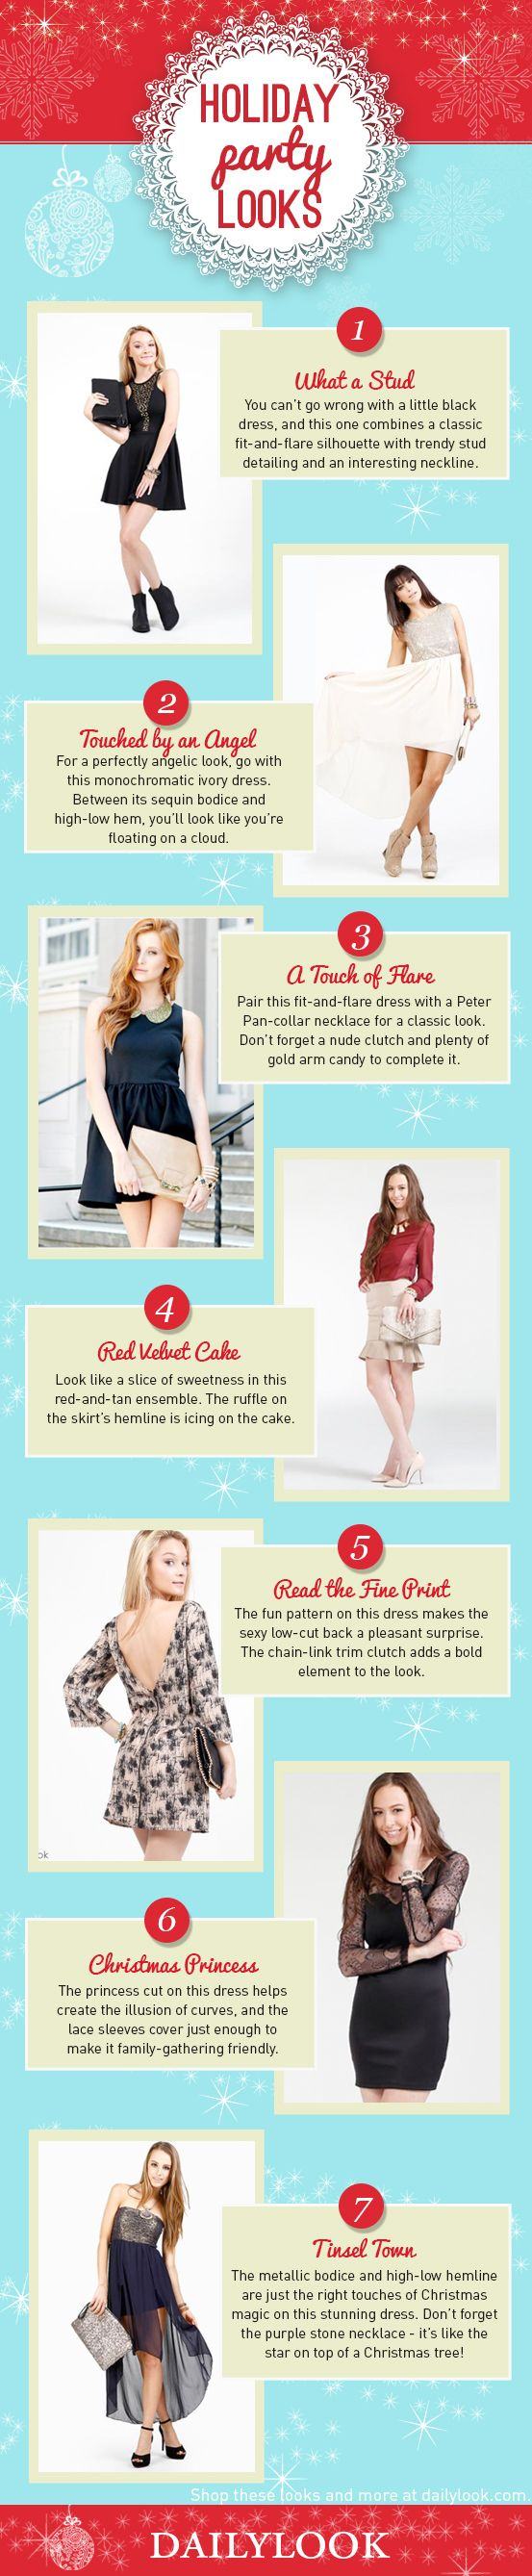 Holiday party looks a dailylook style guide click the image link